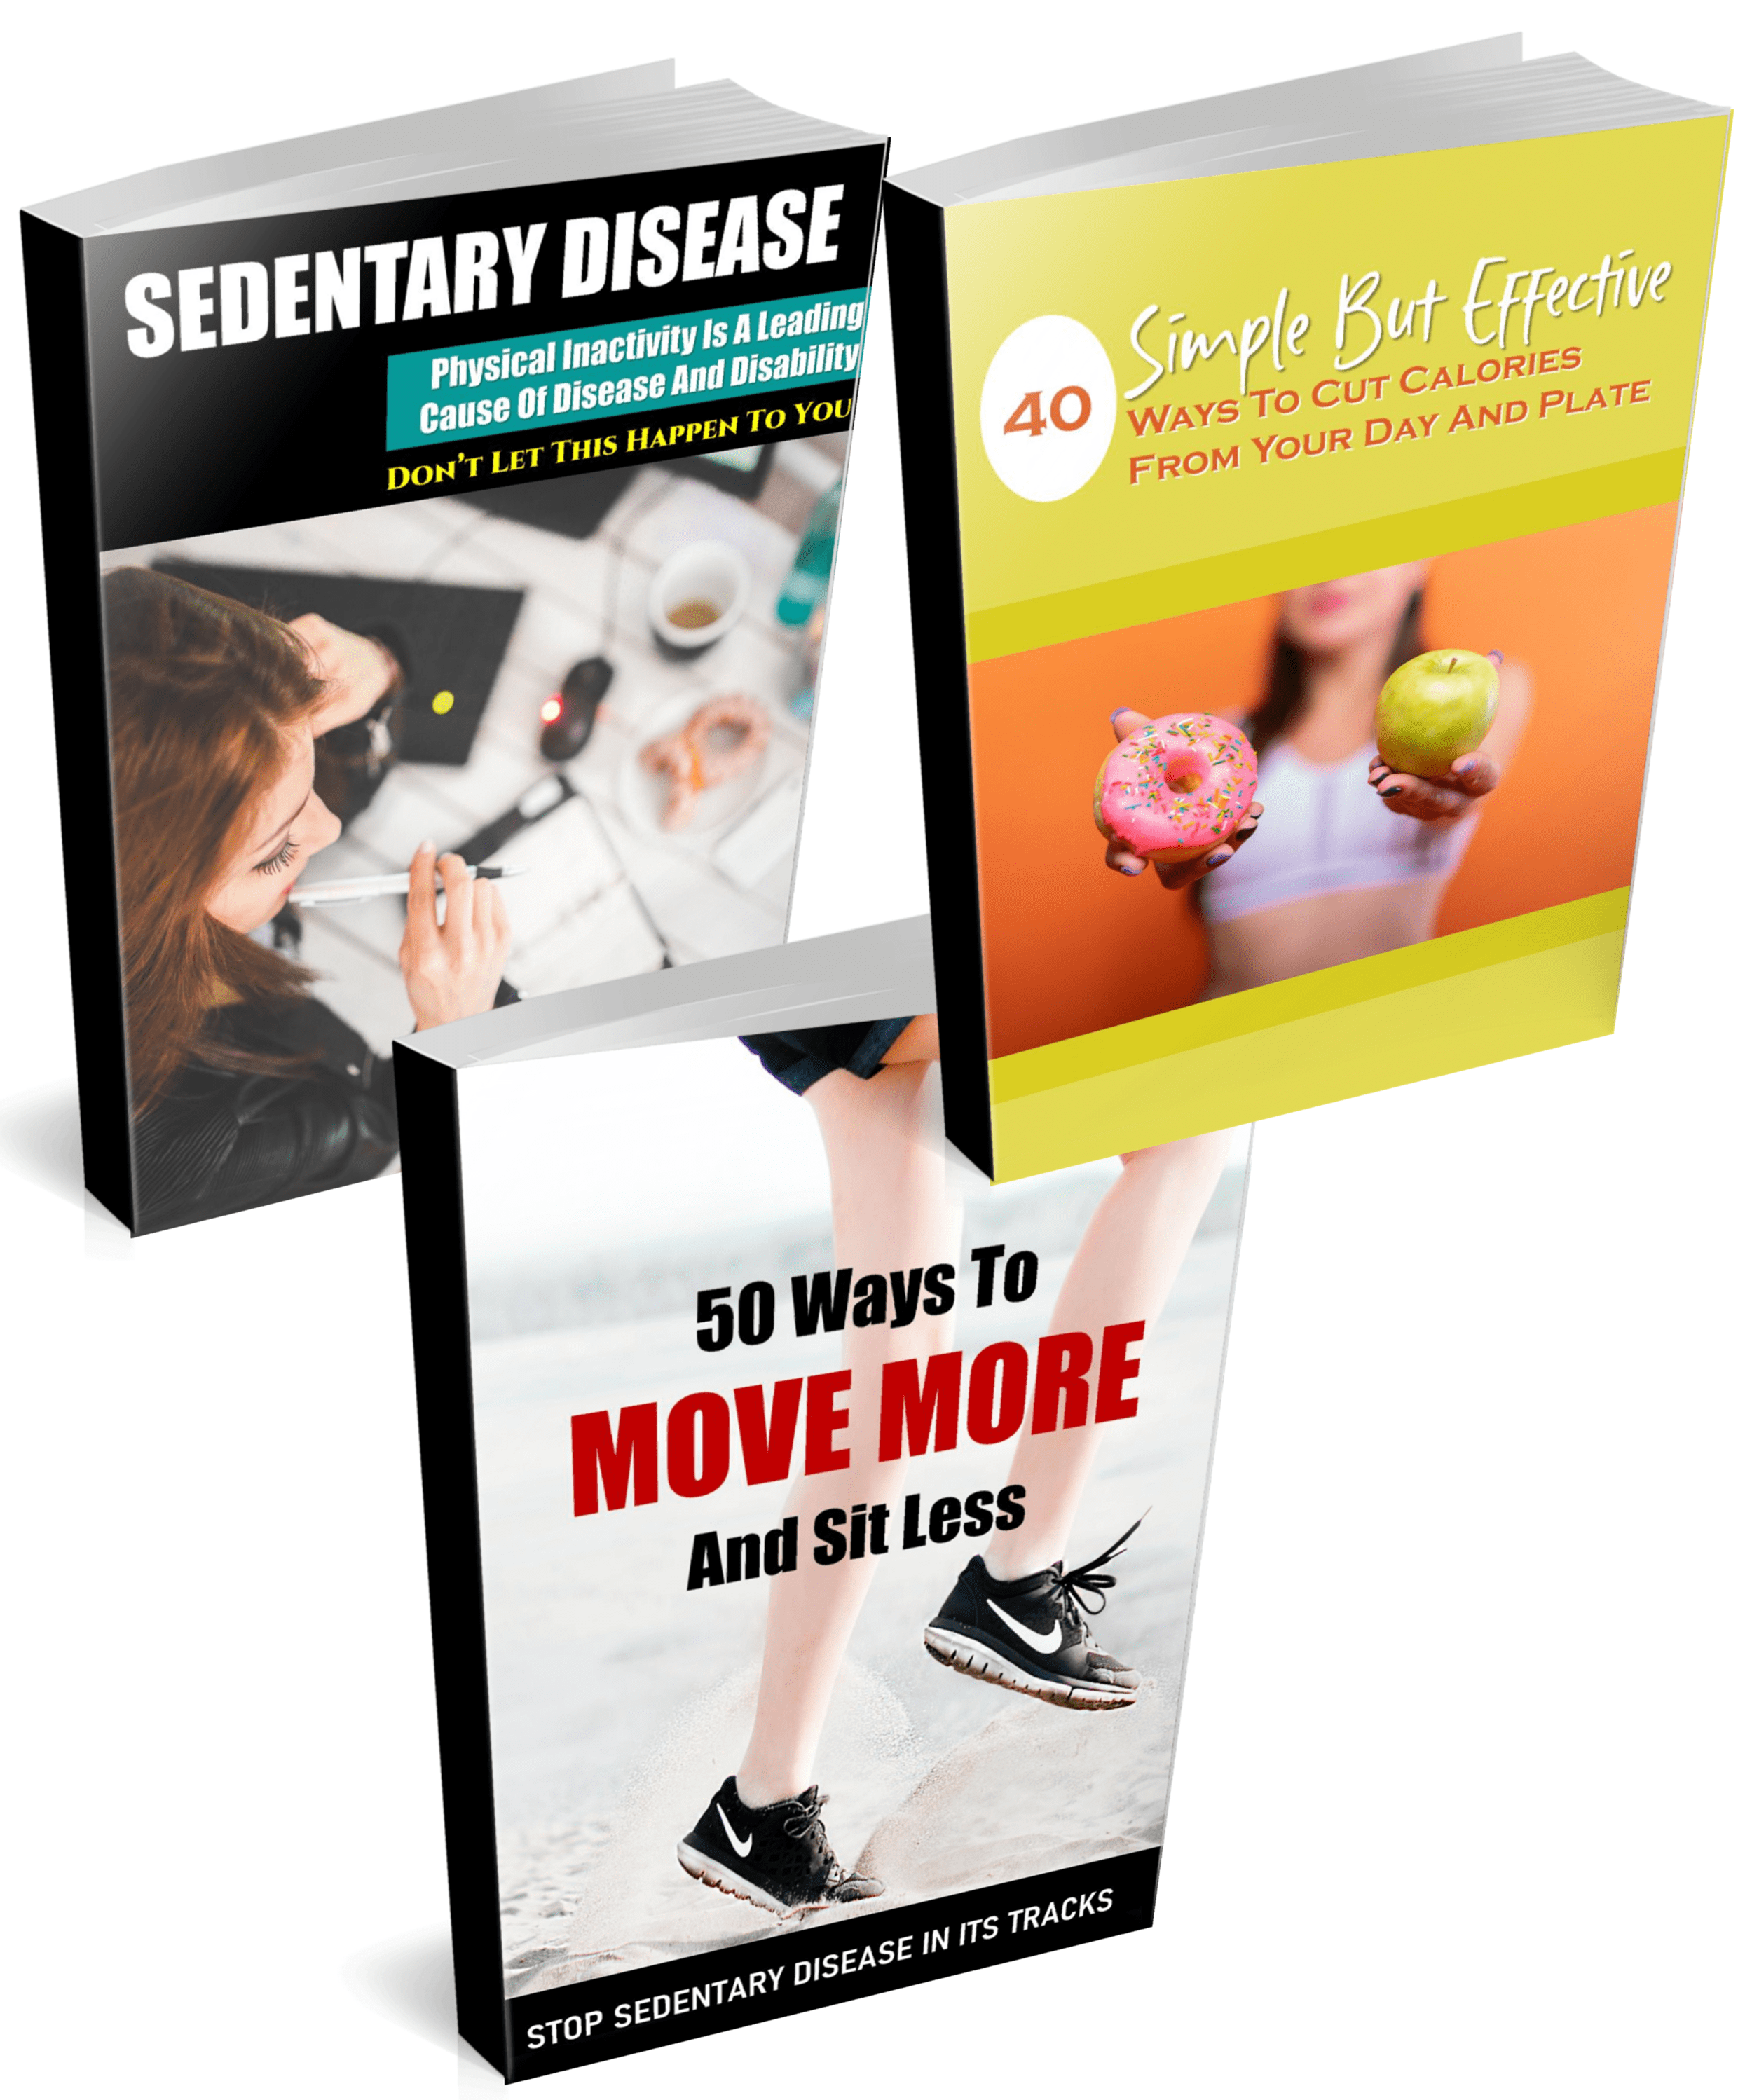 Sedentary Disease Content with PLR Rights